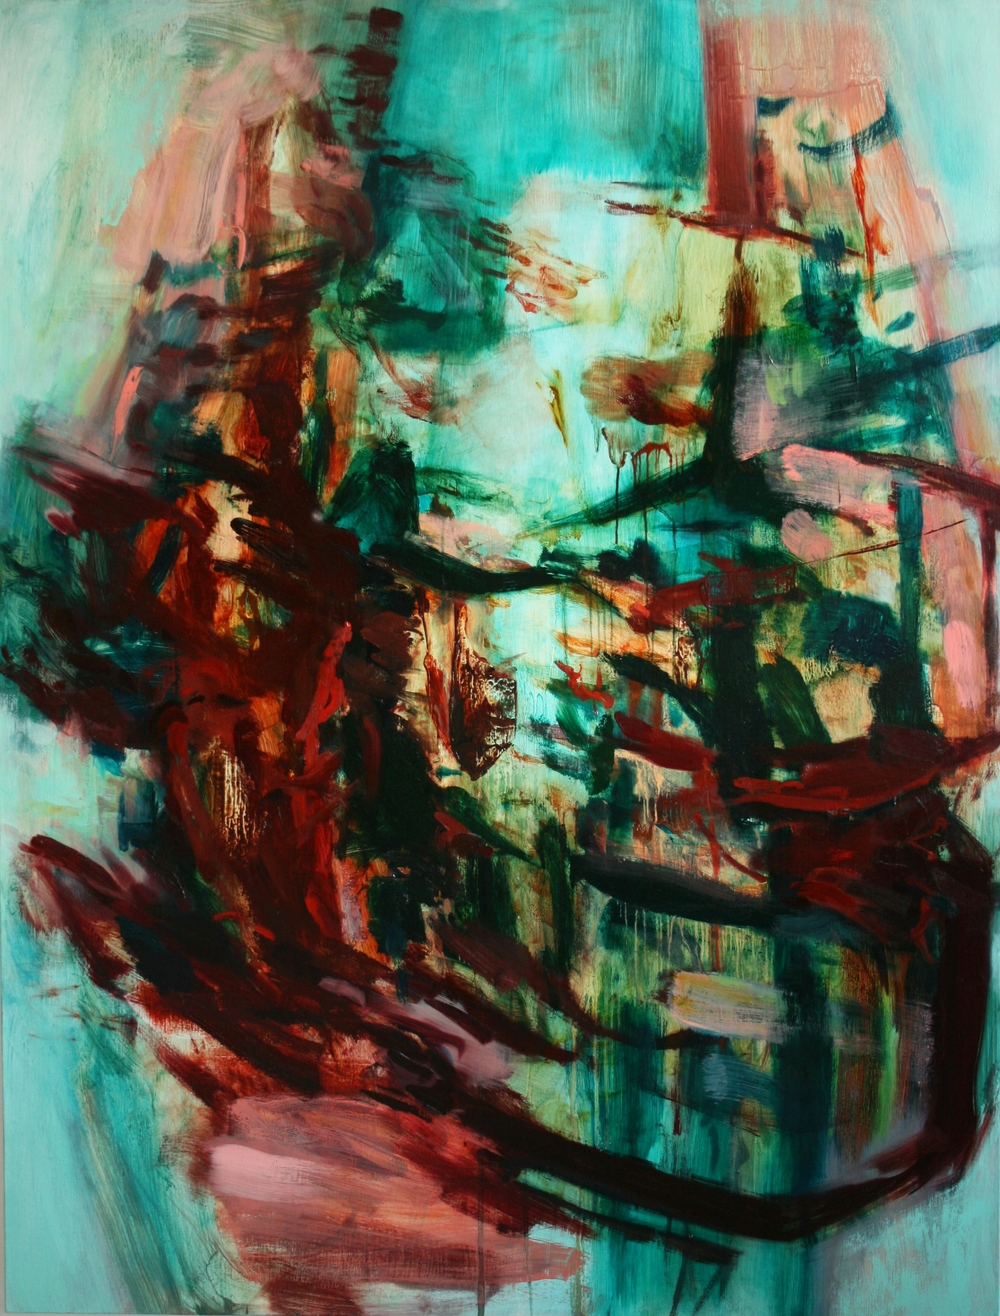 Untitled #2  2011  oil on canvas  154 x 117 cm